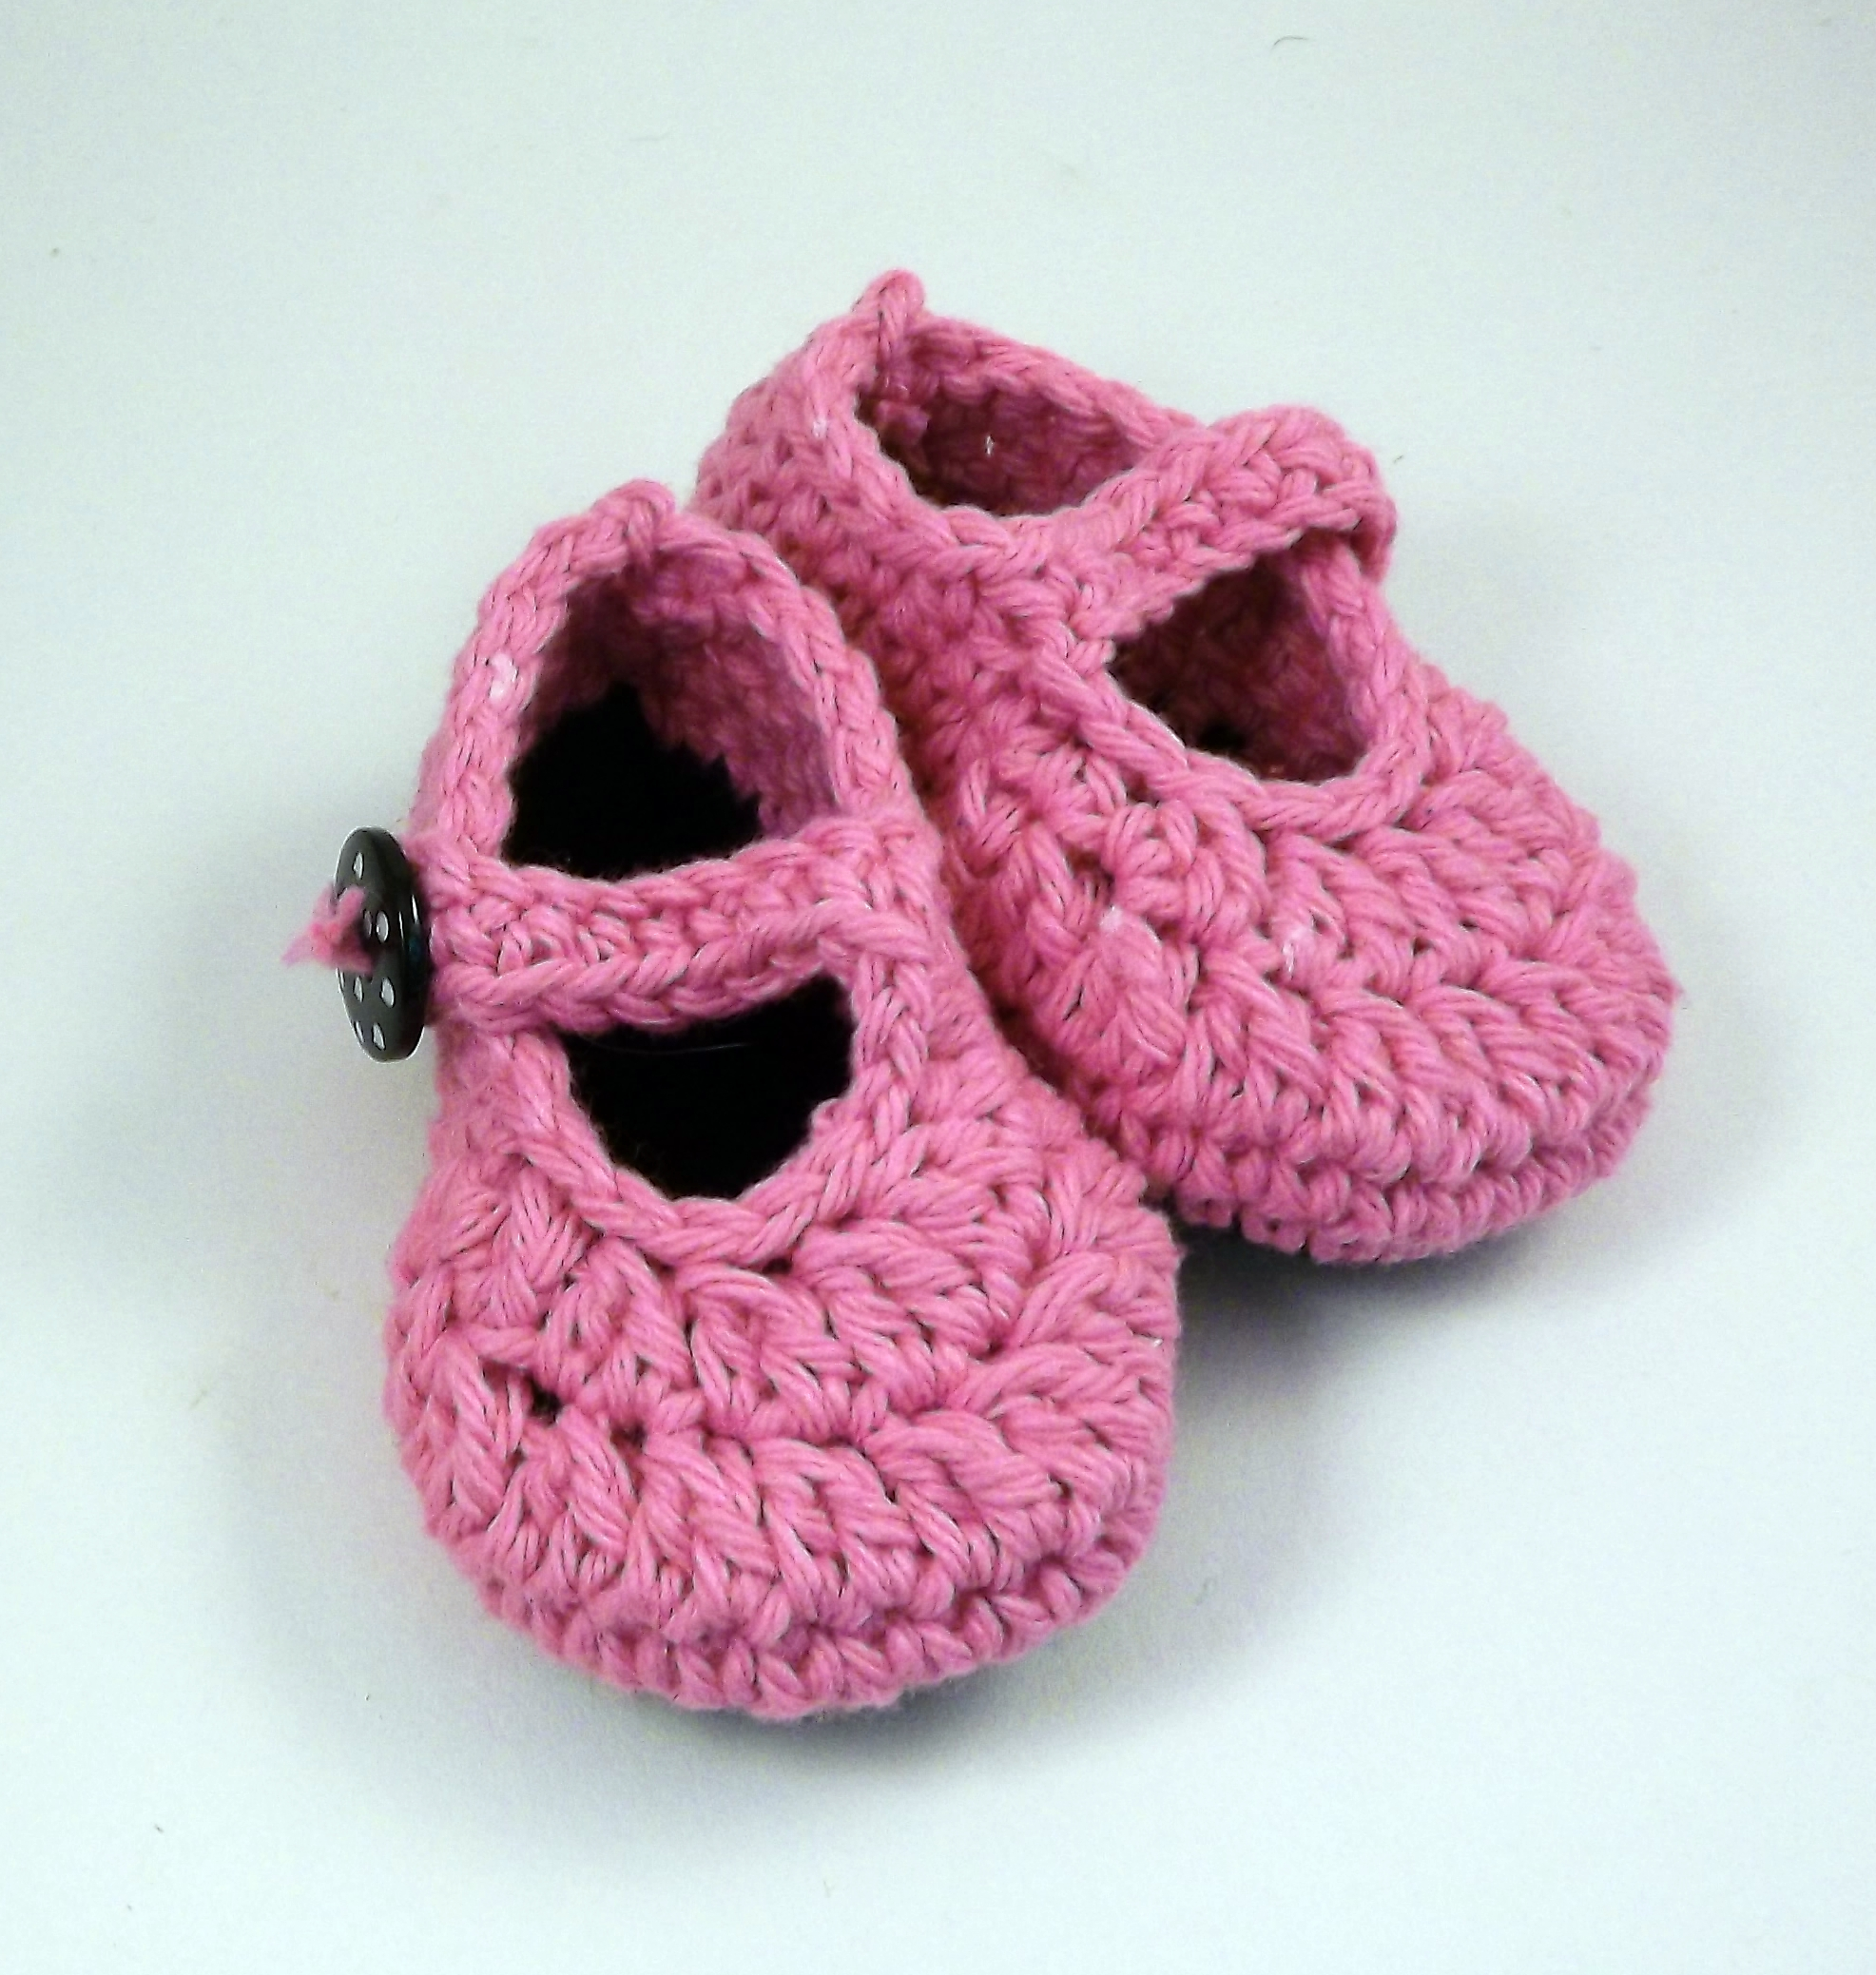 caec0495a3ae7 Crochet Baby Booties, Pink Mary Jane Style, Ready To Ship on Luulla